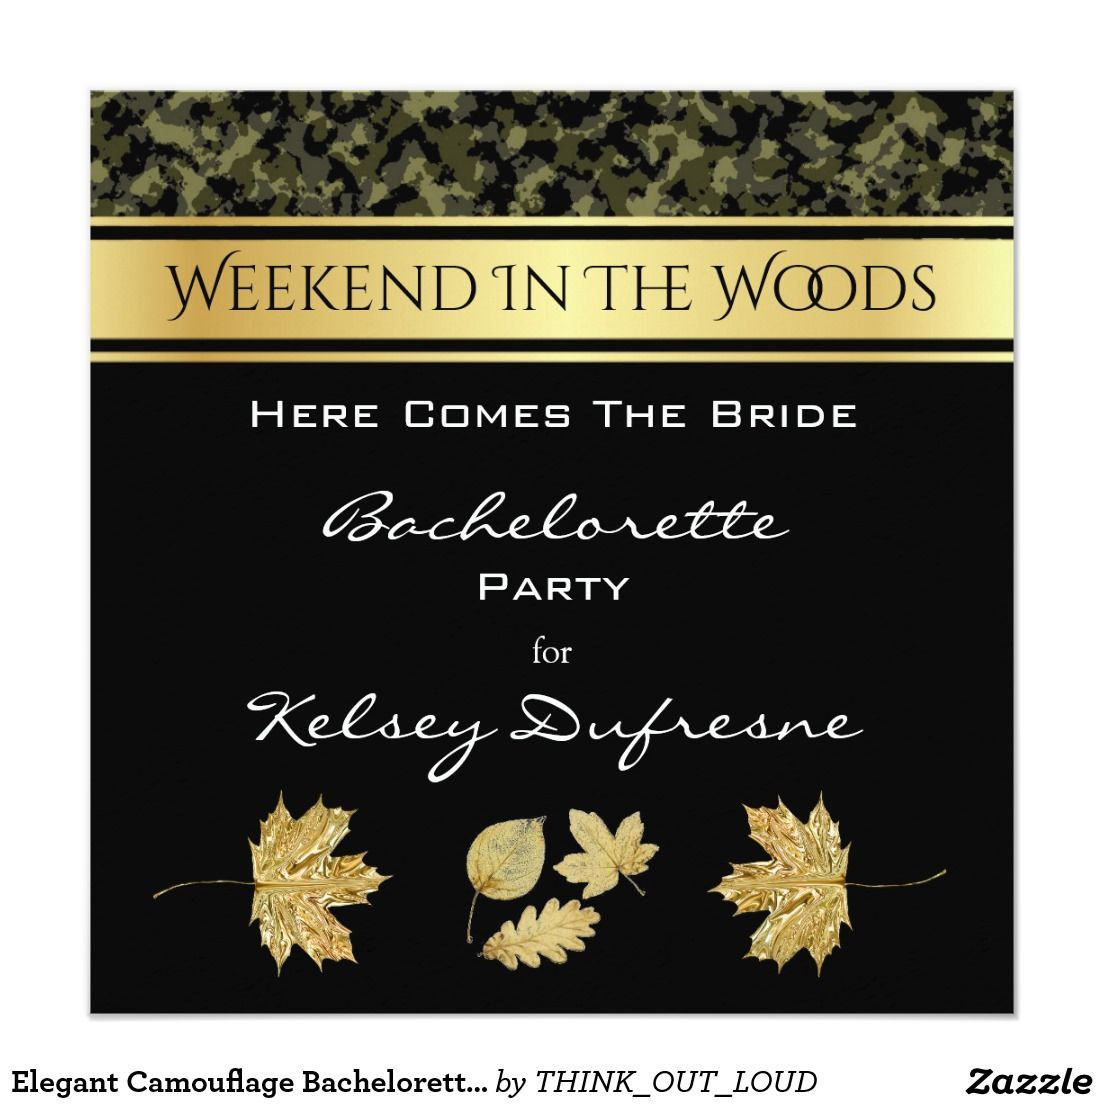 Classy Camo Wedding Ideas: Elegant Camouflage Bachelorette Weekend Invitation